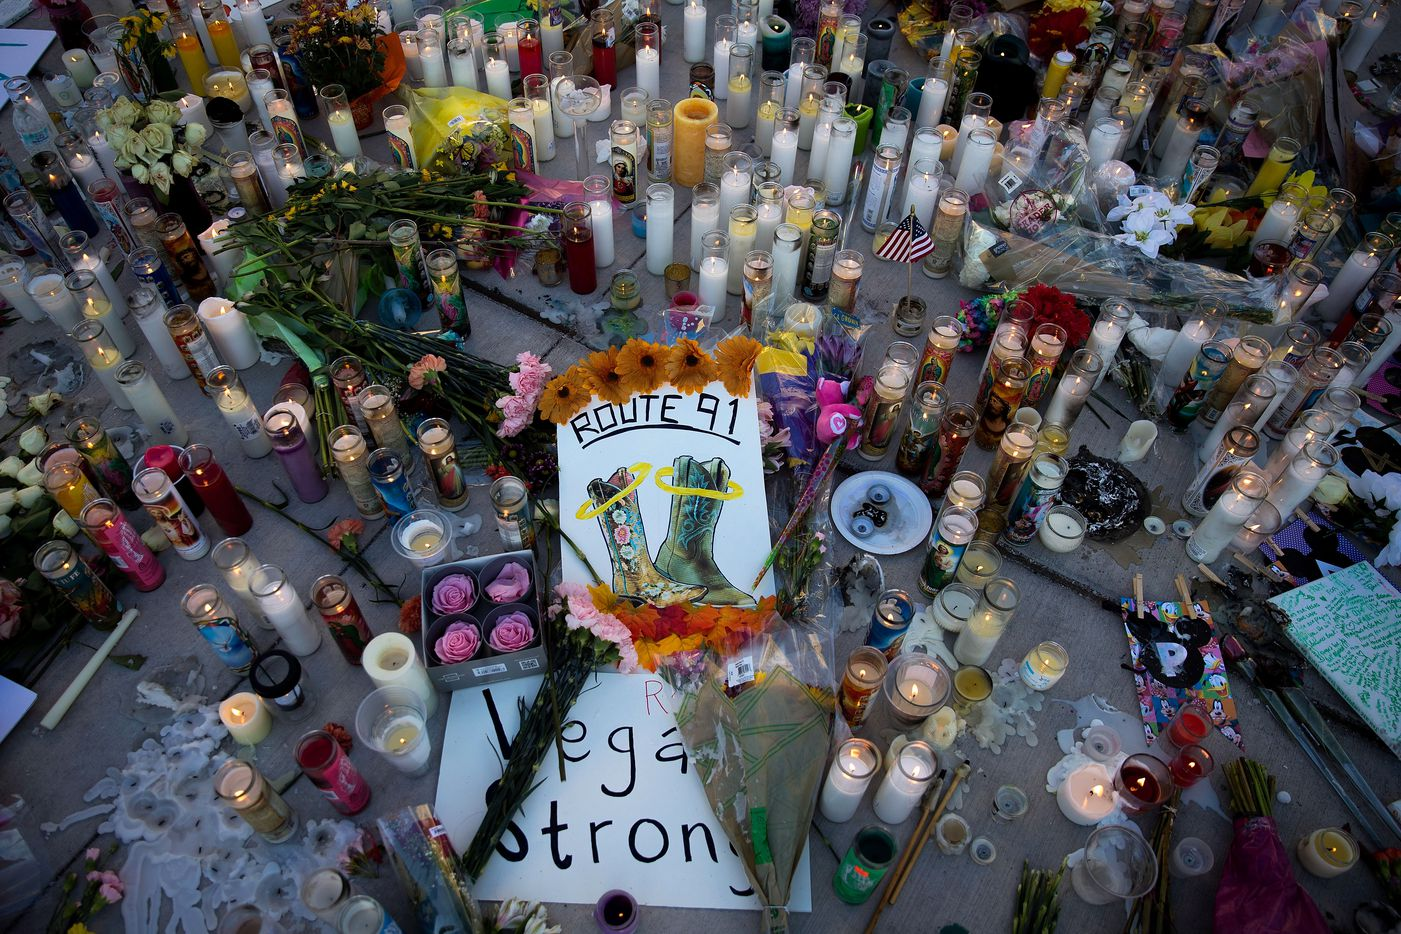 A makeshift memorial for the victims of Sunday night's mass shooting stands at an intersection of the north end of the Las Vegas Strip on Oct. 3 in Las Vegas. The gunman, identified as Stephen Paddock, 64, of Mesquite, Nev., allegedly opened fire from a room on the 32nd floor of the Mandalay Bay Resort and Casino on the music festival, leaving at least 58 people dead and over 500 injured. According to reports, Paddock killed himself at the scene. The massacre is one of the deadliest mass shootings in U.S. history.